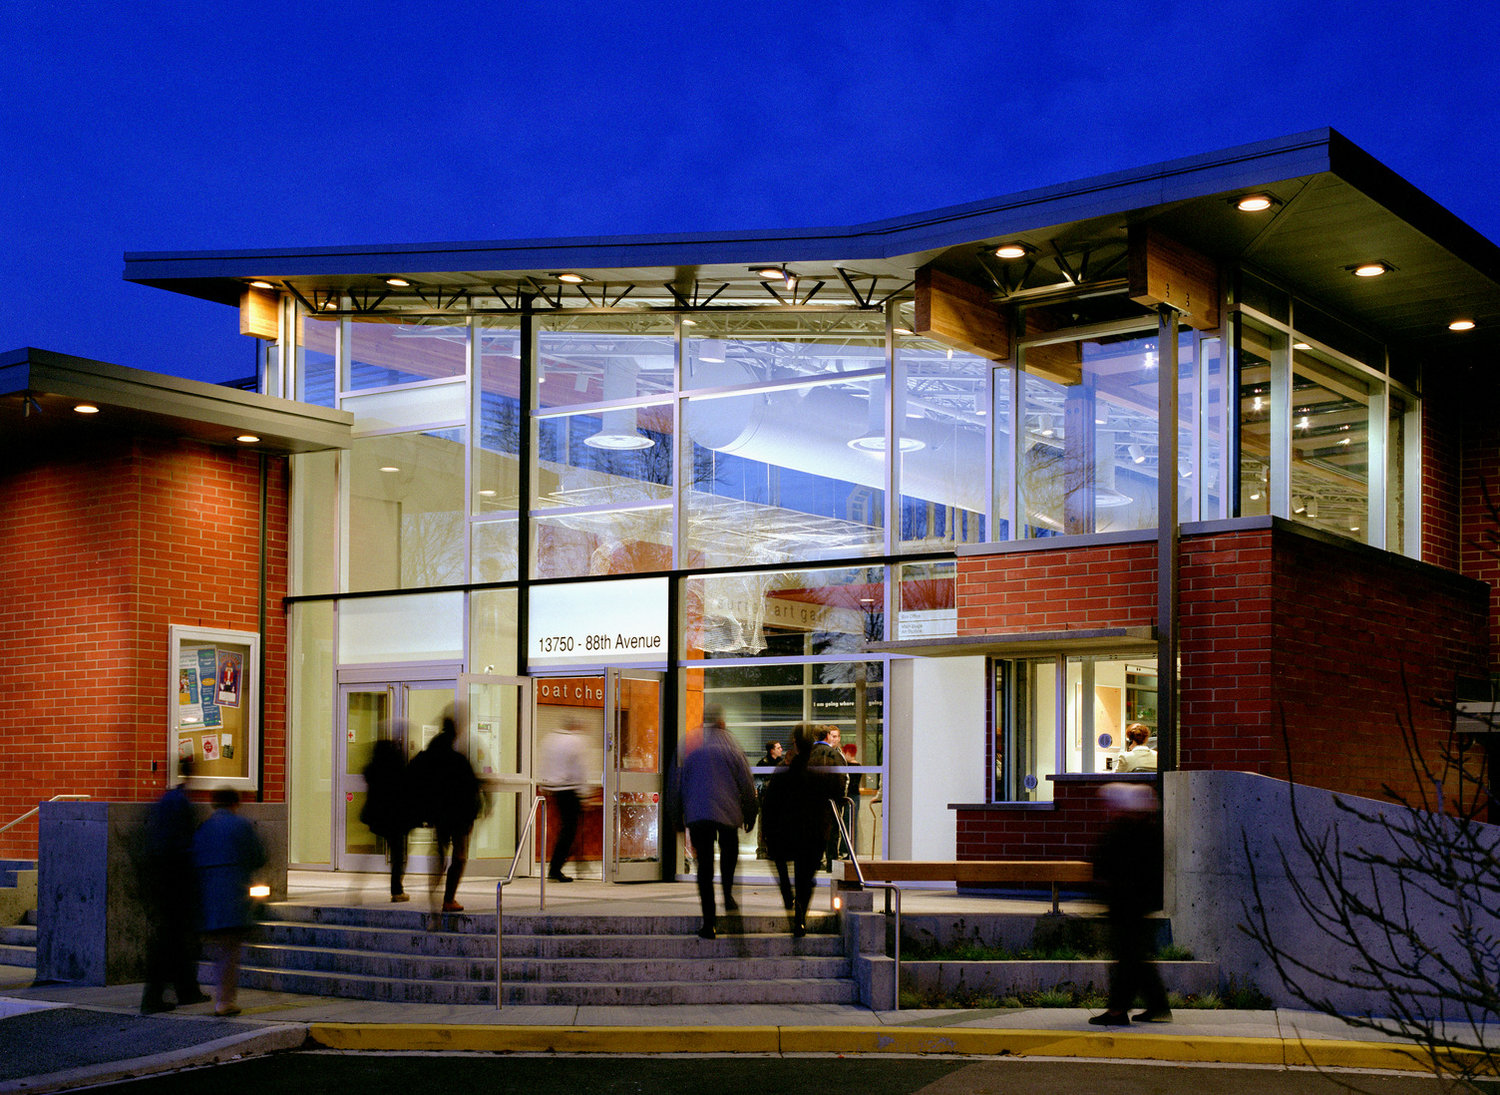 SurreyArtsCentre